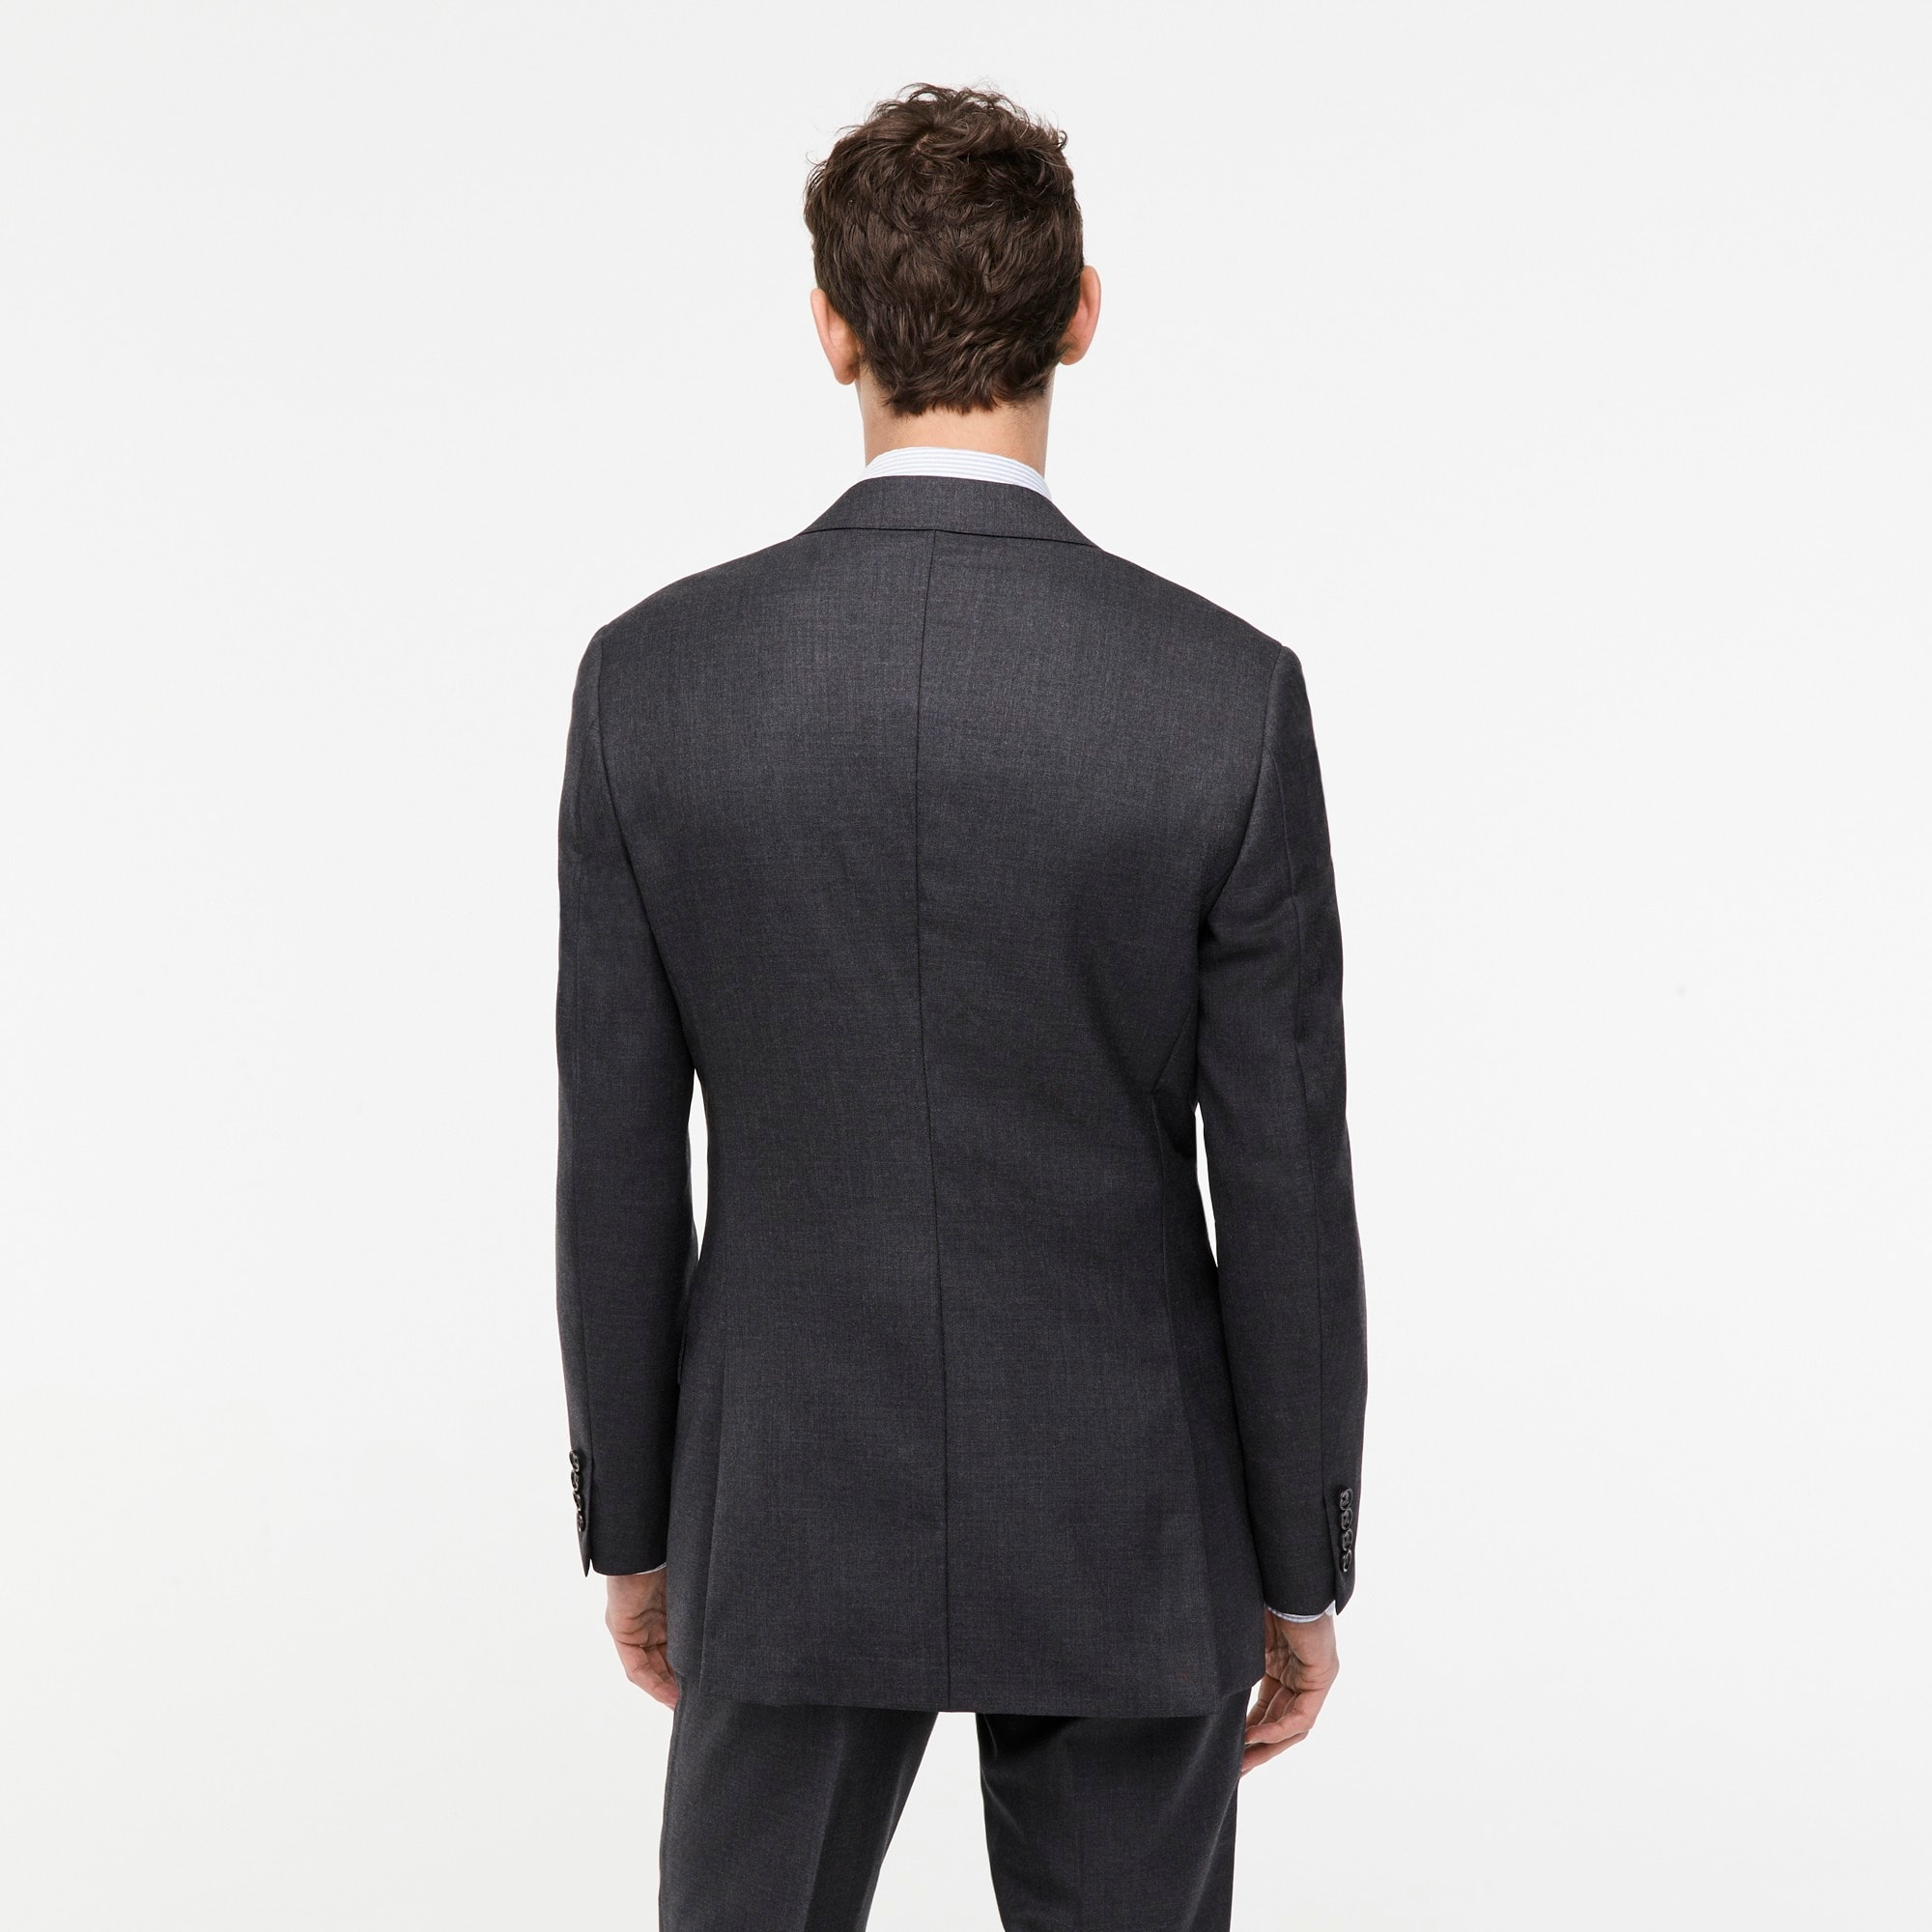 Ludlow Slim-fit suit jacket with double vent in charcoal American Wool